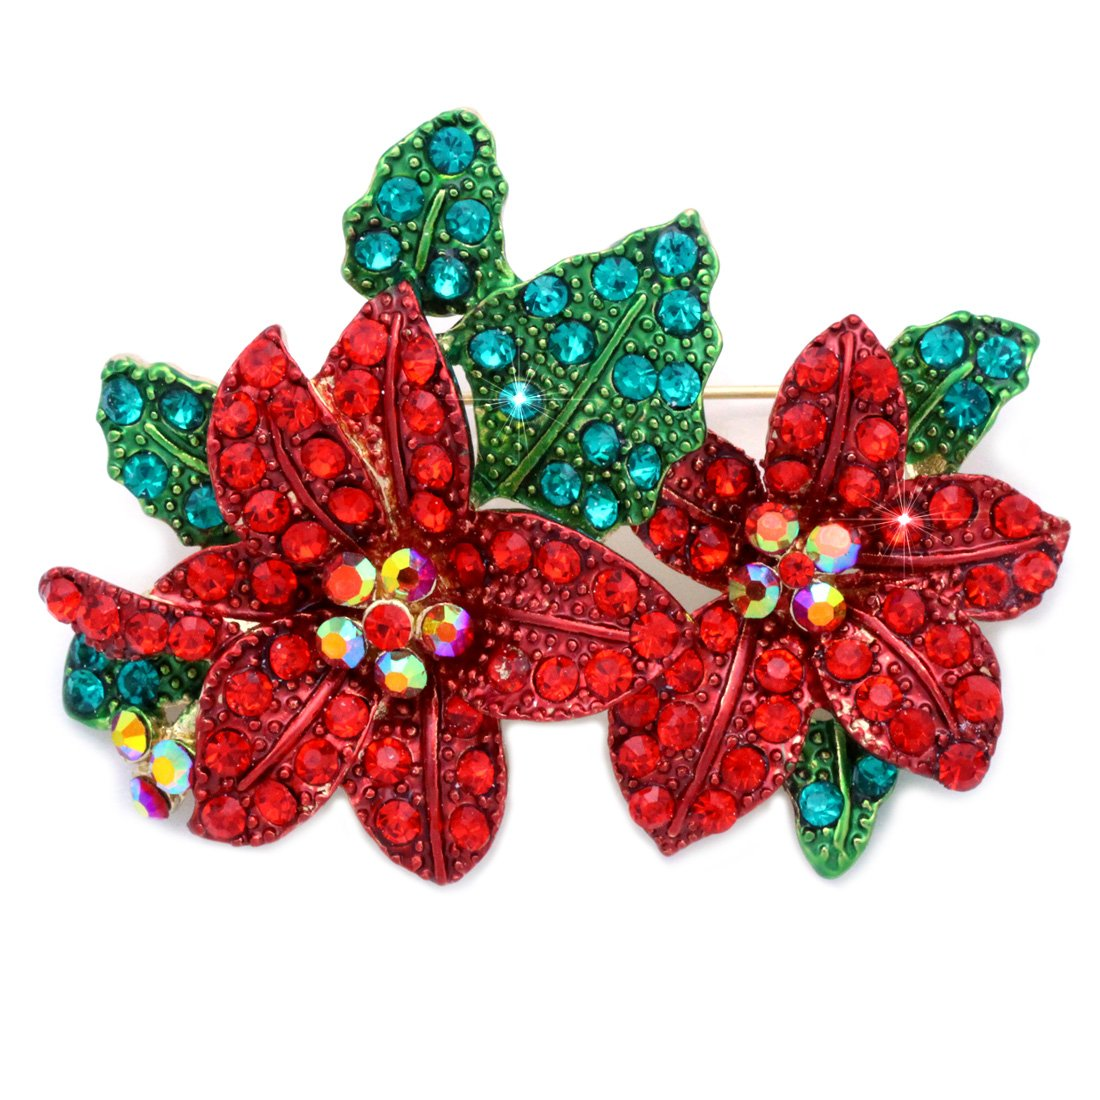 cocojewelry Christmas Poinsettia Red Green Crystal Pin Brooch Holiday Jewelry (Gold-tone)